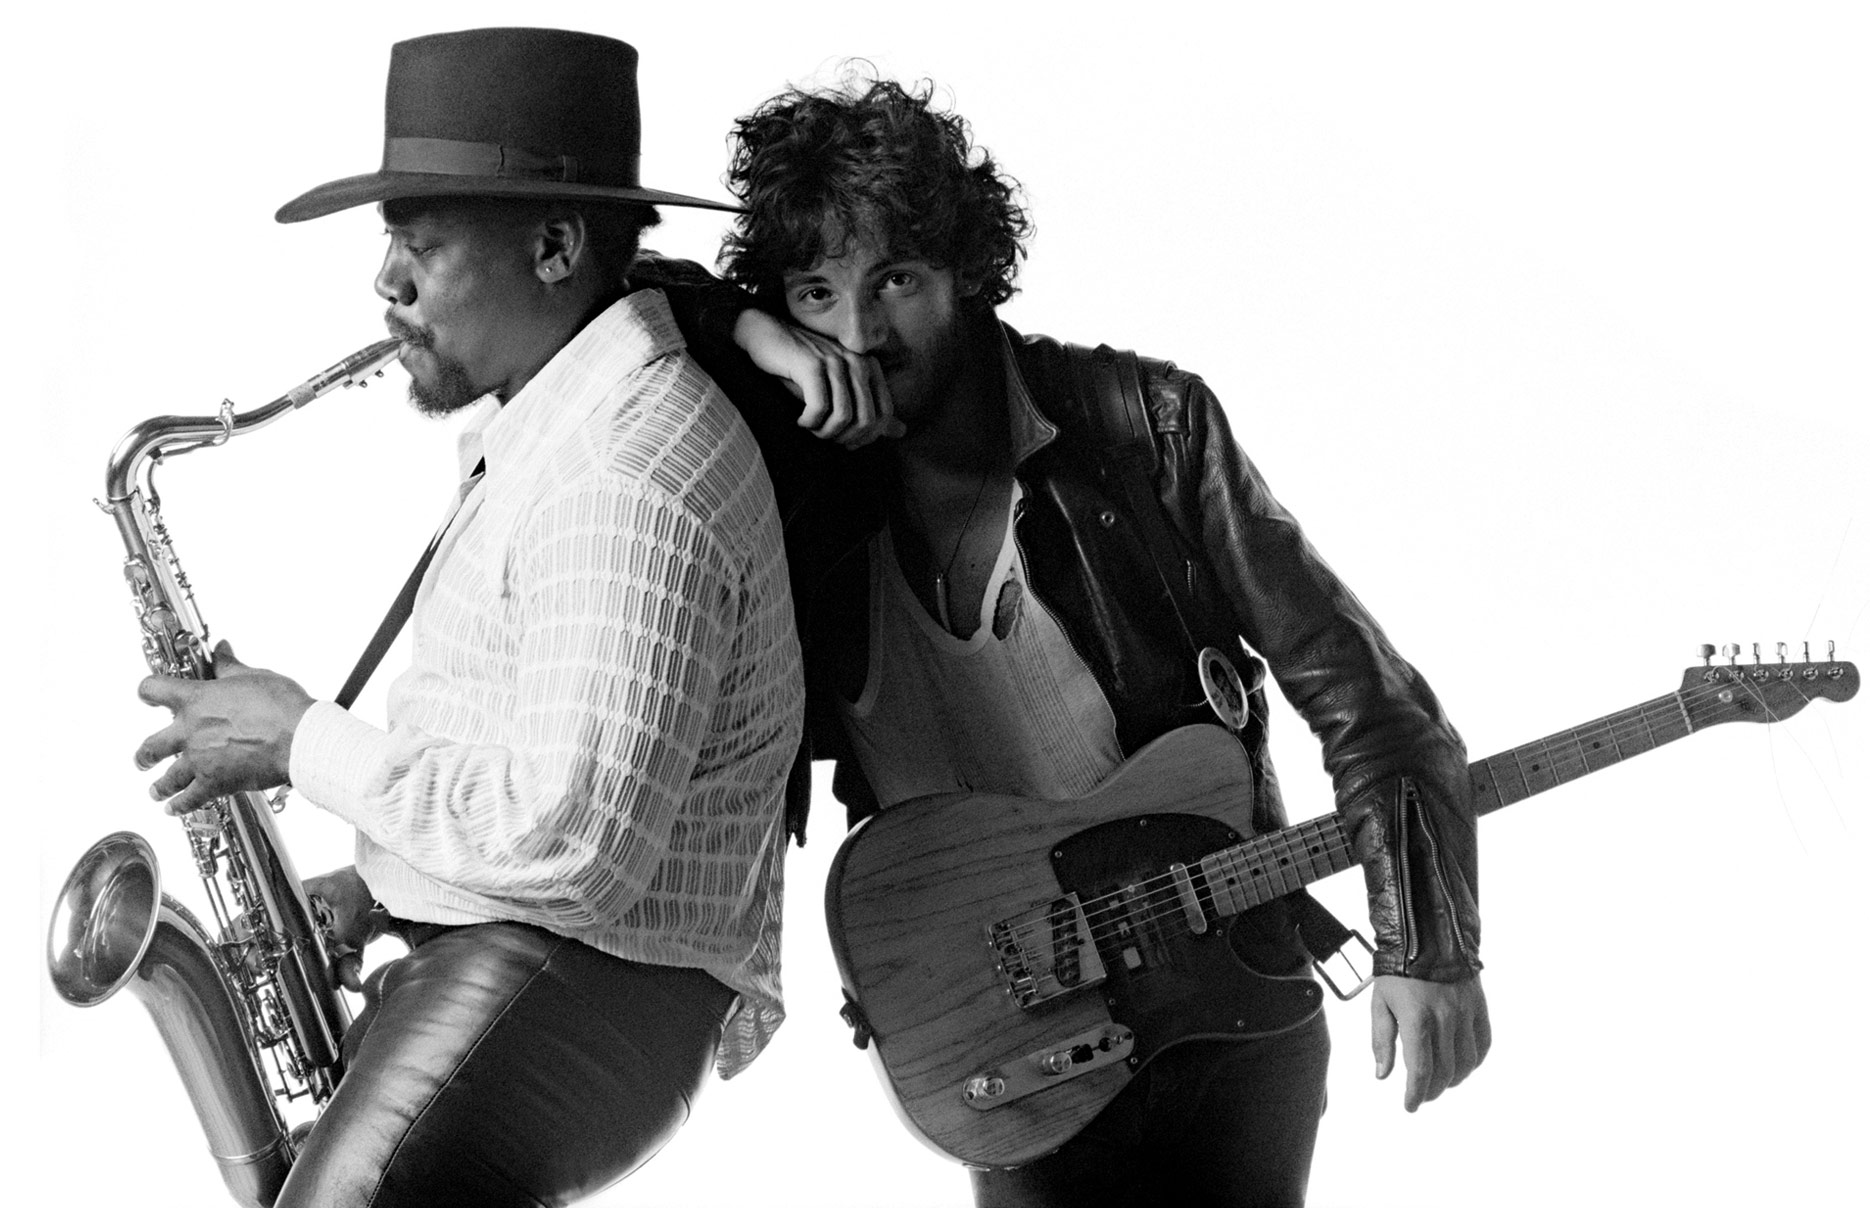 Bruce Springsteen and Clarence Clemons from the Born to Run album cover photo shoot